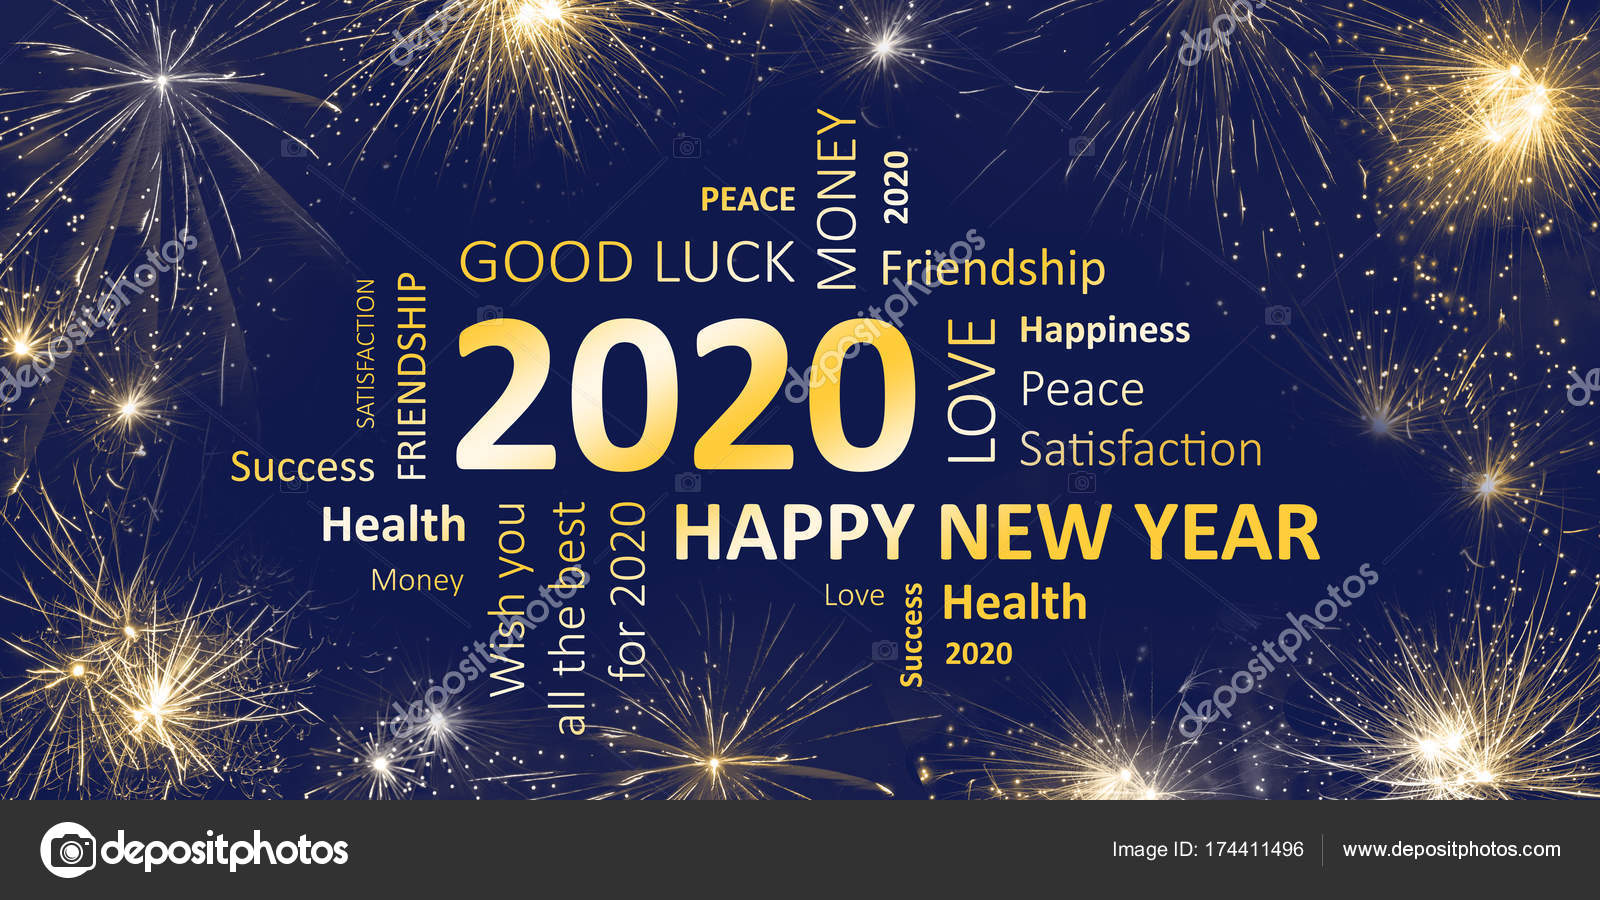 New Years Wishes 2020 New years card Happy new year 2020 and wishes — Stock Photo